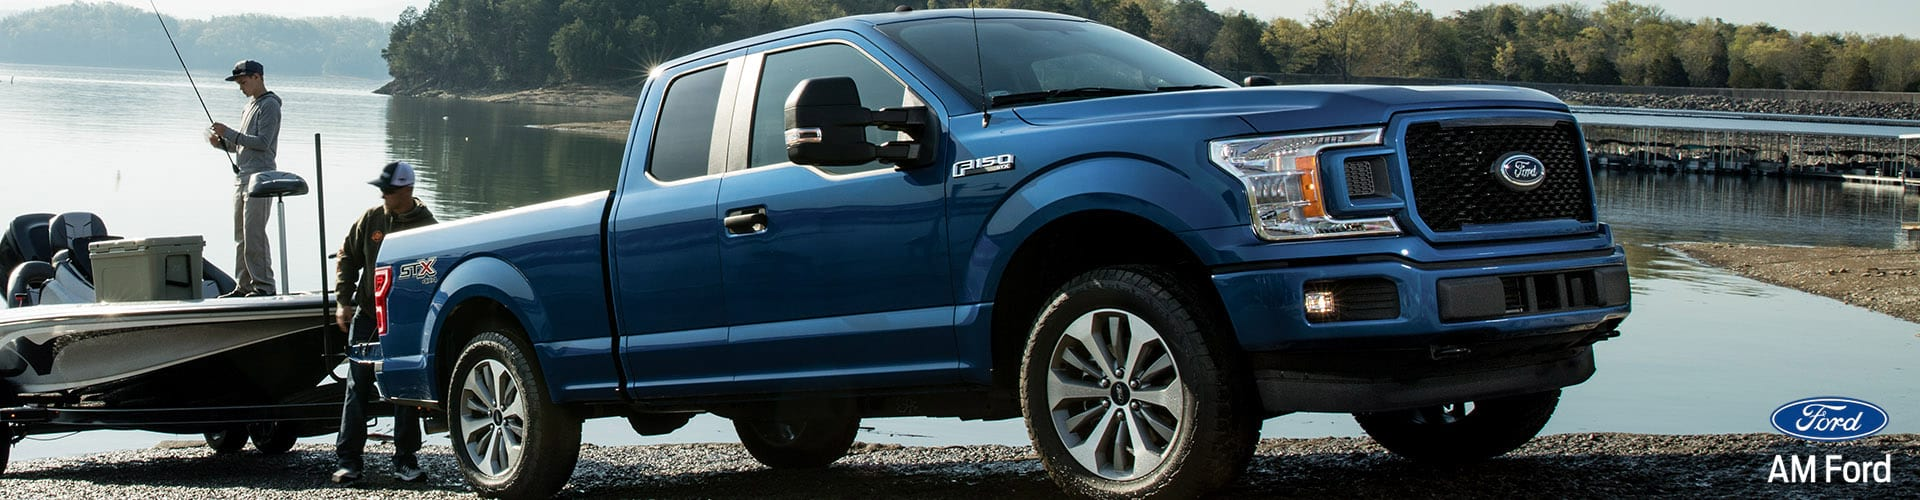 AM Ford-F-150